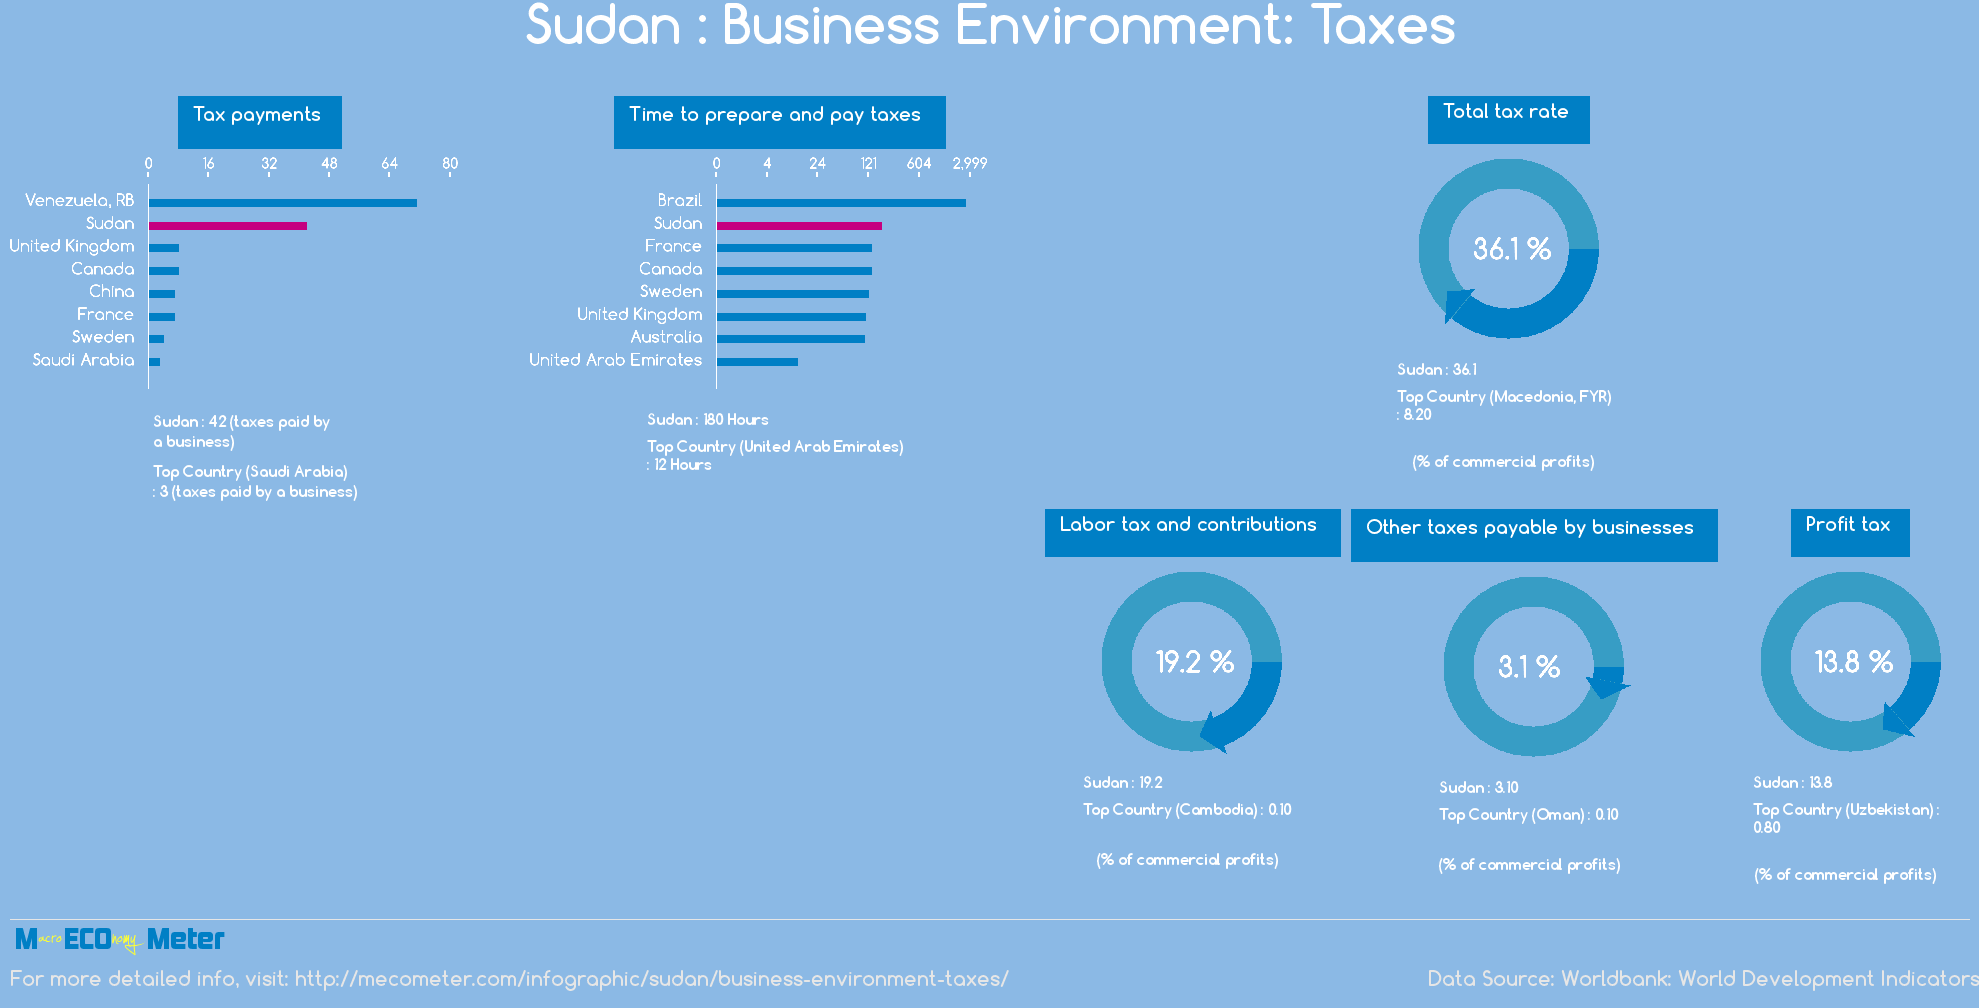 Sudan : Business Environment: Taxes